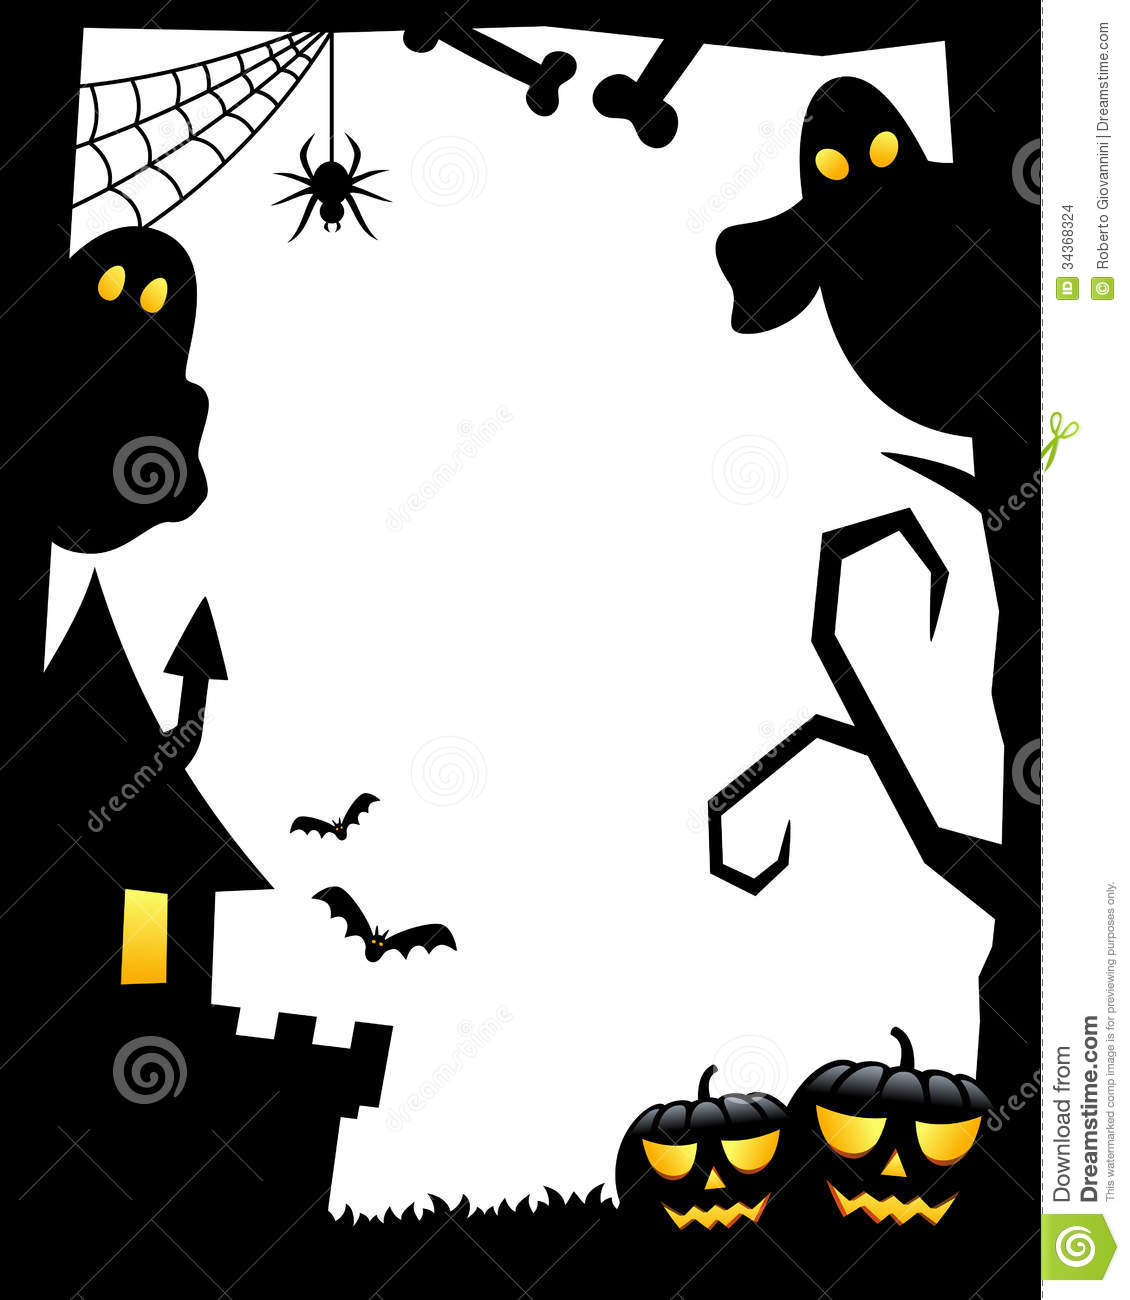 Pics photos halloween clip art boarded haunted house dennis - Halloween black and white ...